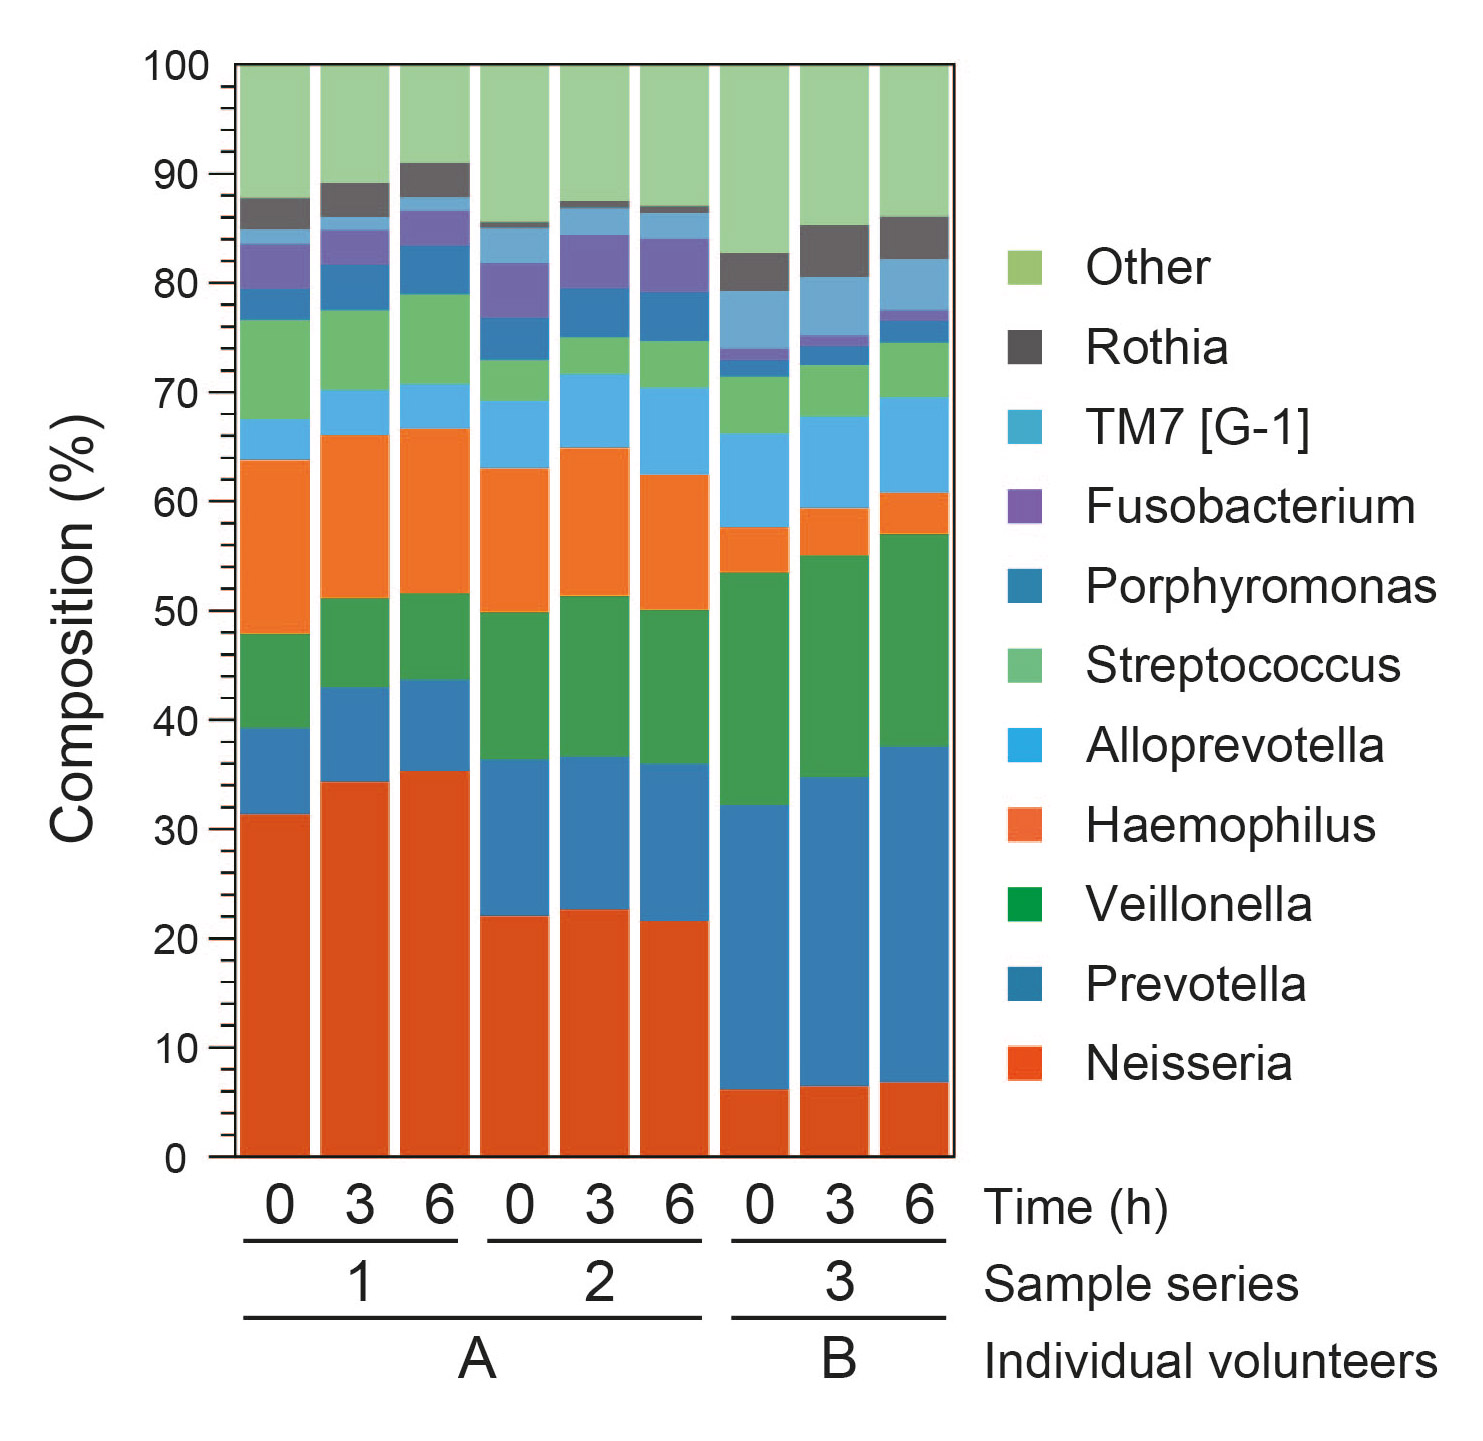 Fig. 1 Relative genus abundance of salivary samples. Three salivary specimens were collected from 2 healthy adults. The 3 samples from the left are series 1 (samples from volunteer A), the 3 samples in the middle are series 2 (samples from volunteer A), and the next 3 samples are series 3 (samples from volunteer B). The 10 most predominant genera and their relative abundance are presented.